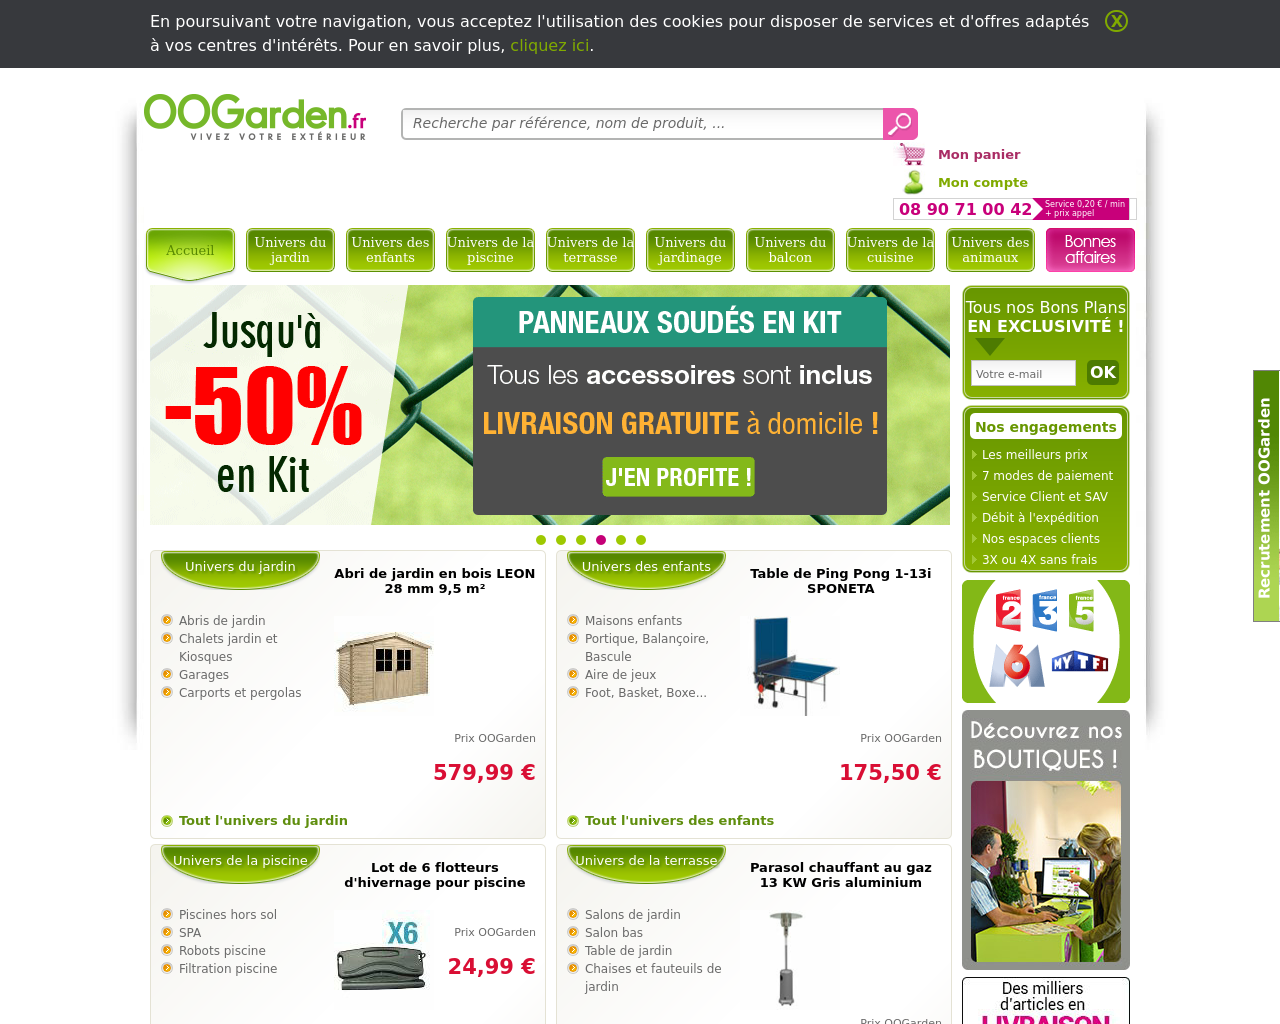 Oogarden Com oogarden advertising mediakits, reviews, pricing, traffic, rate